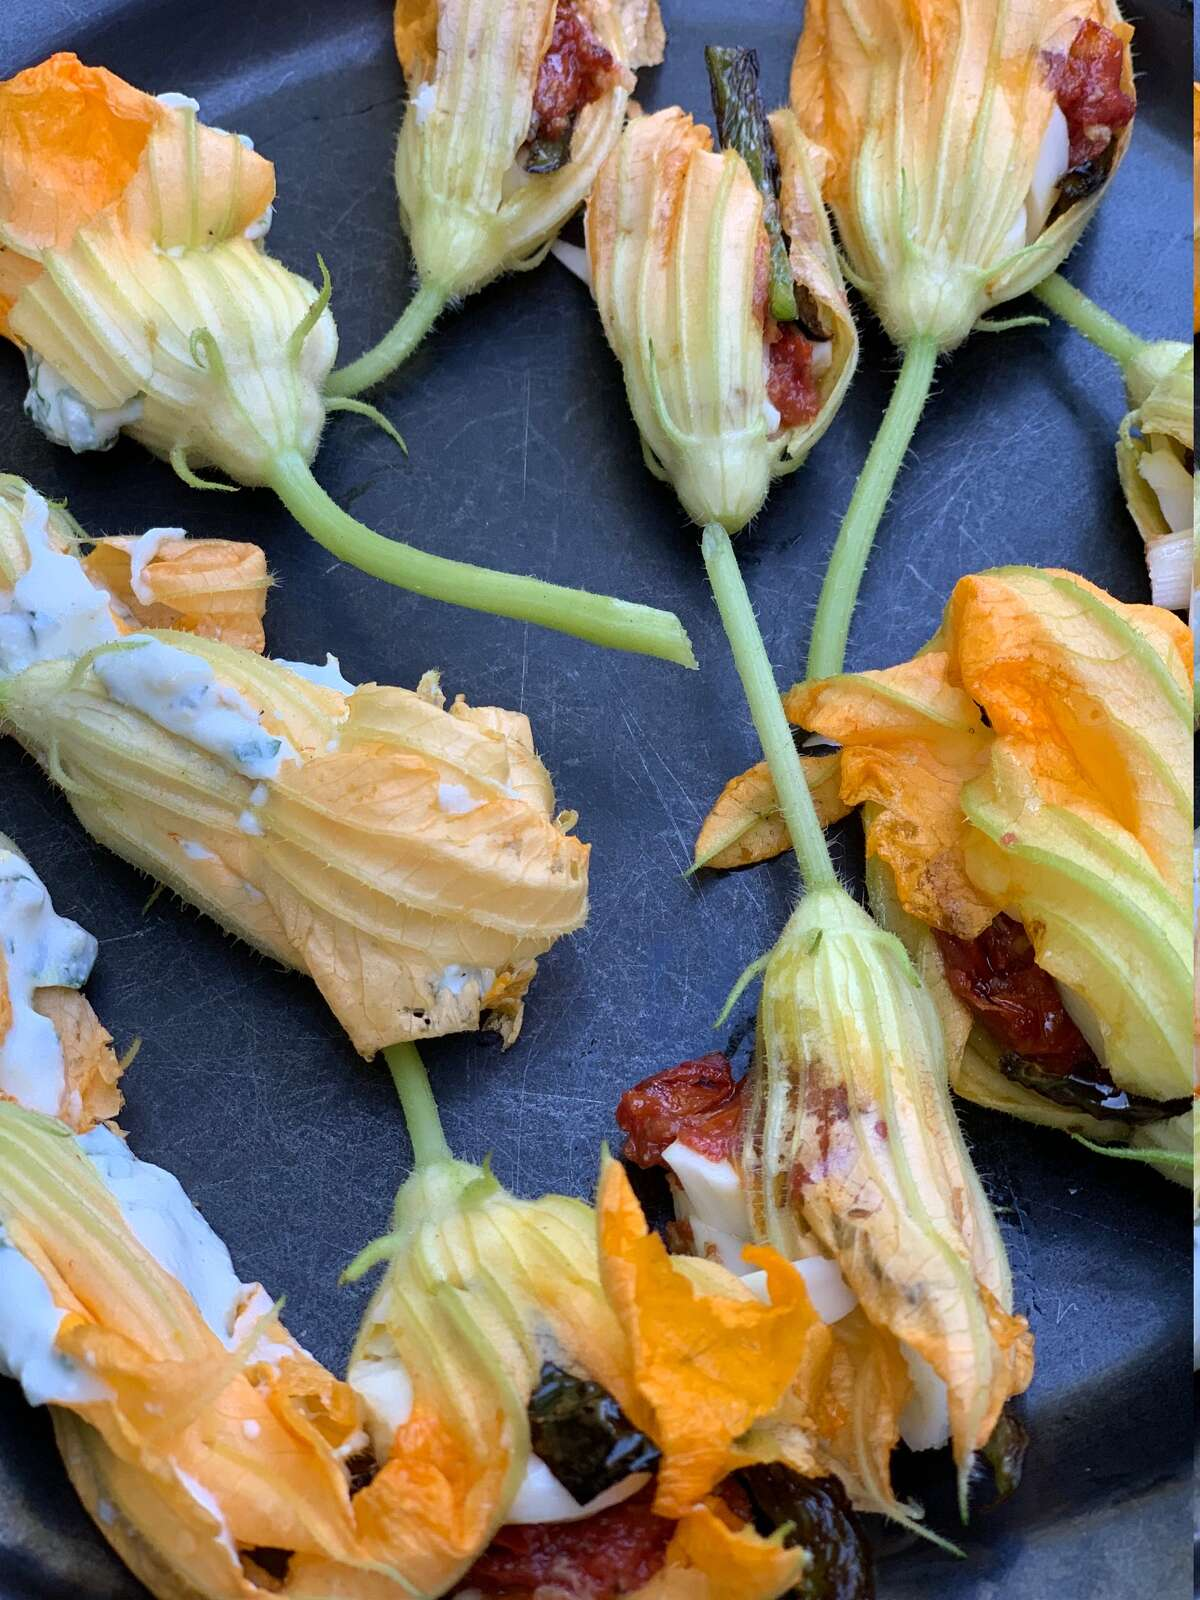 Squash blossoms, from the fresh plant to stuffed.